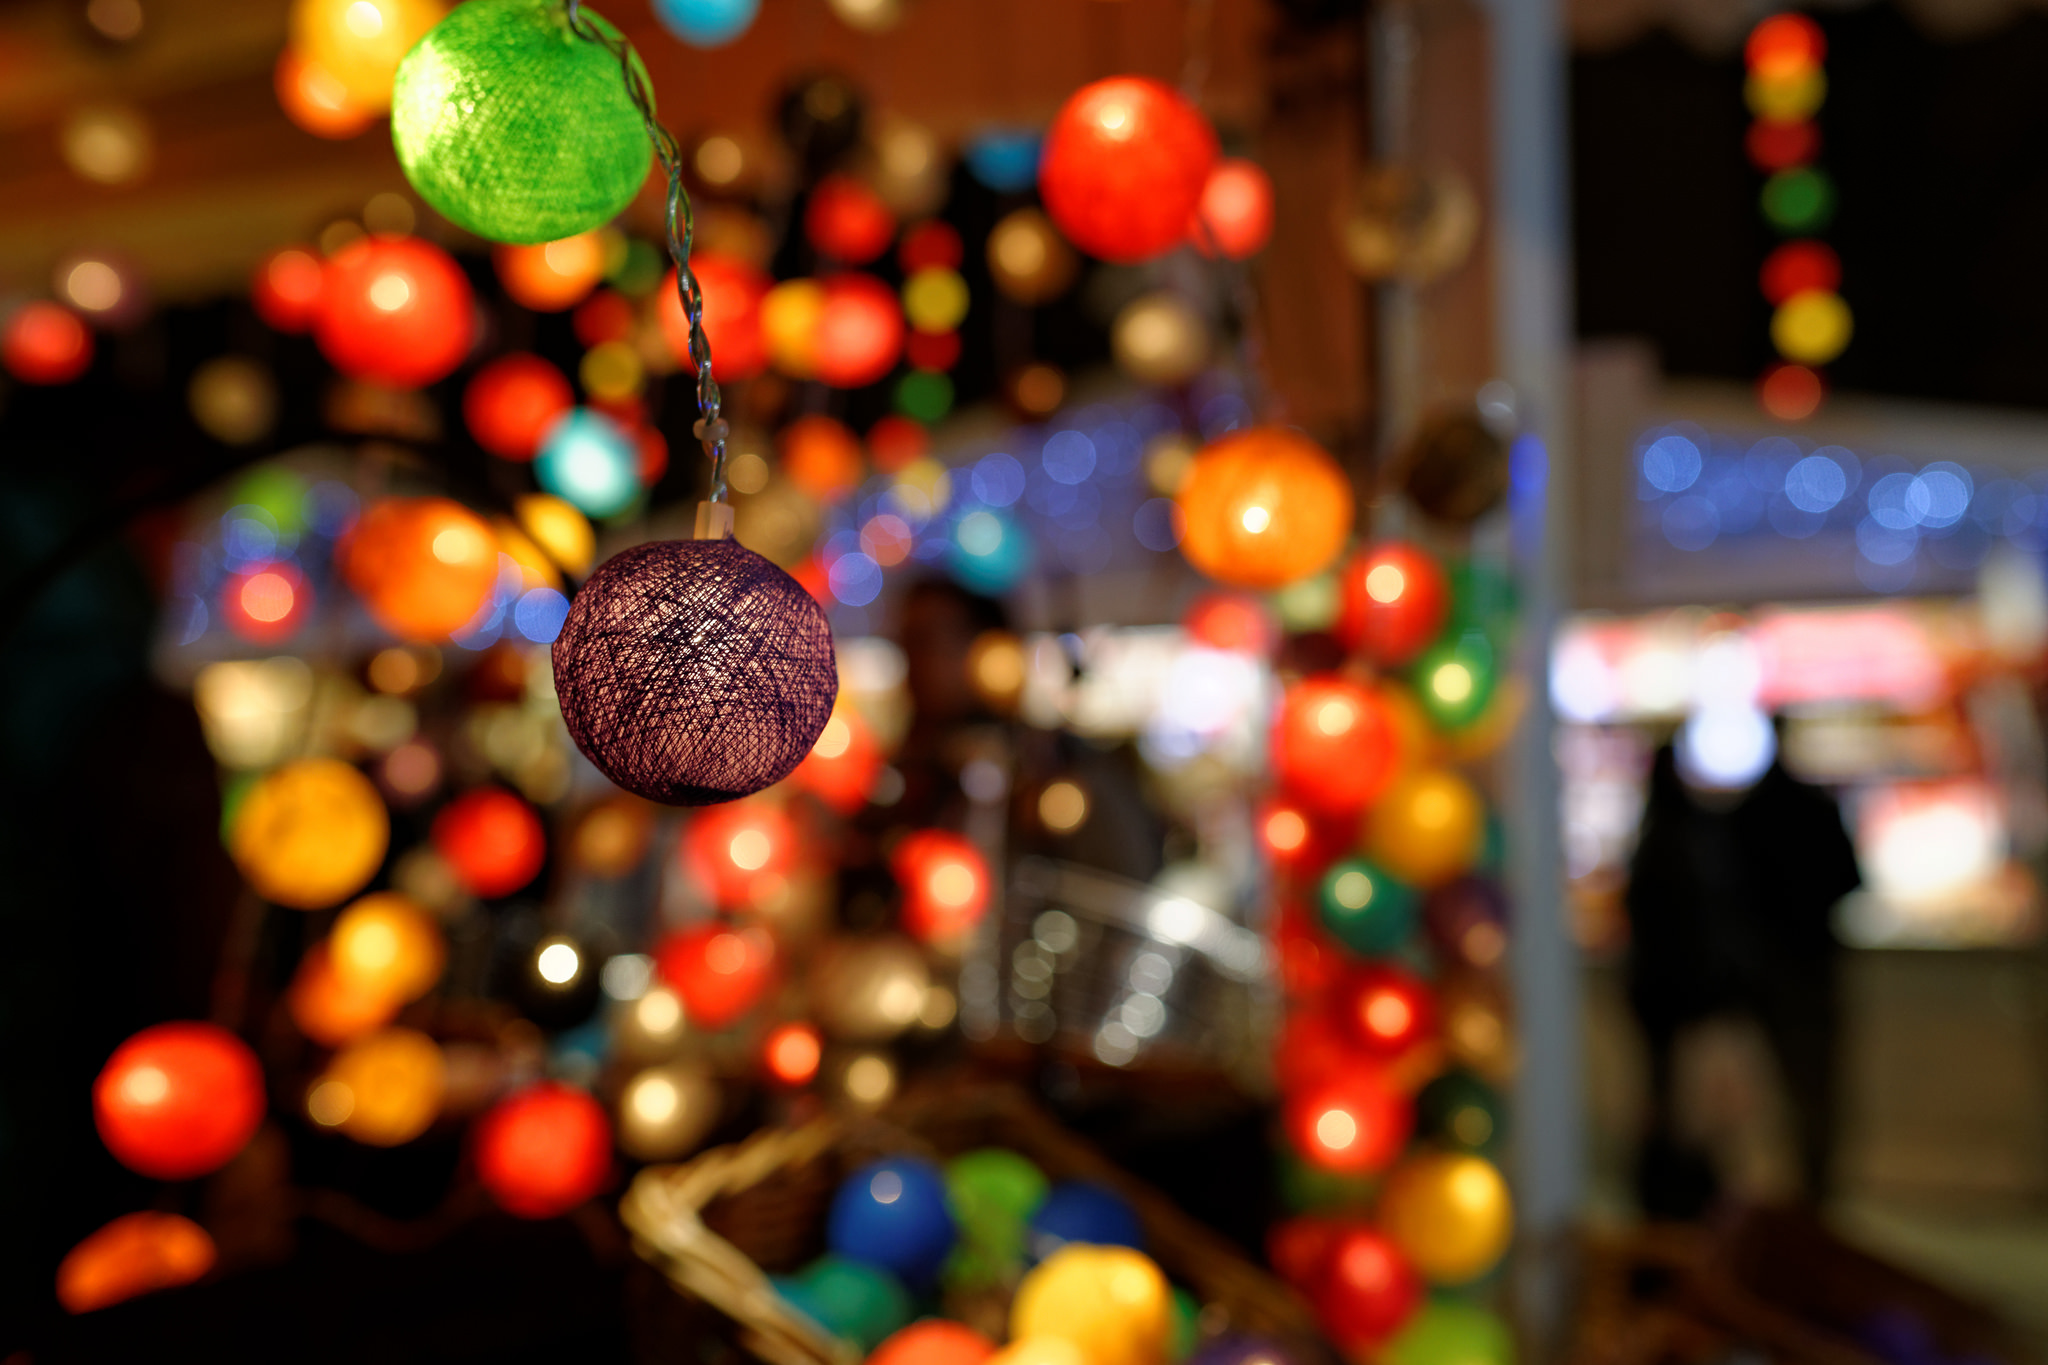 Christmas Balls | © S. Faric/Flickr